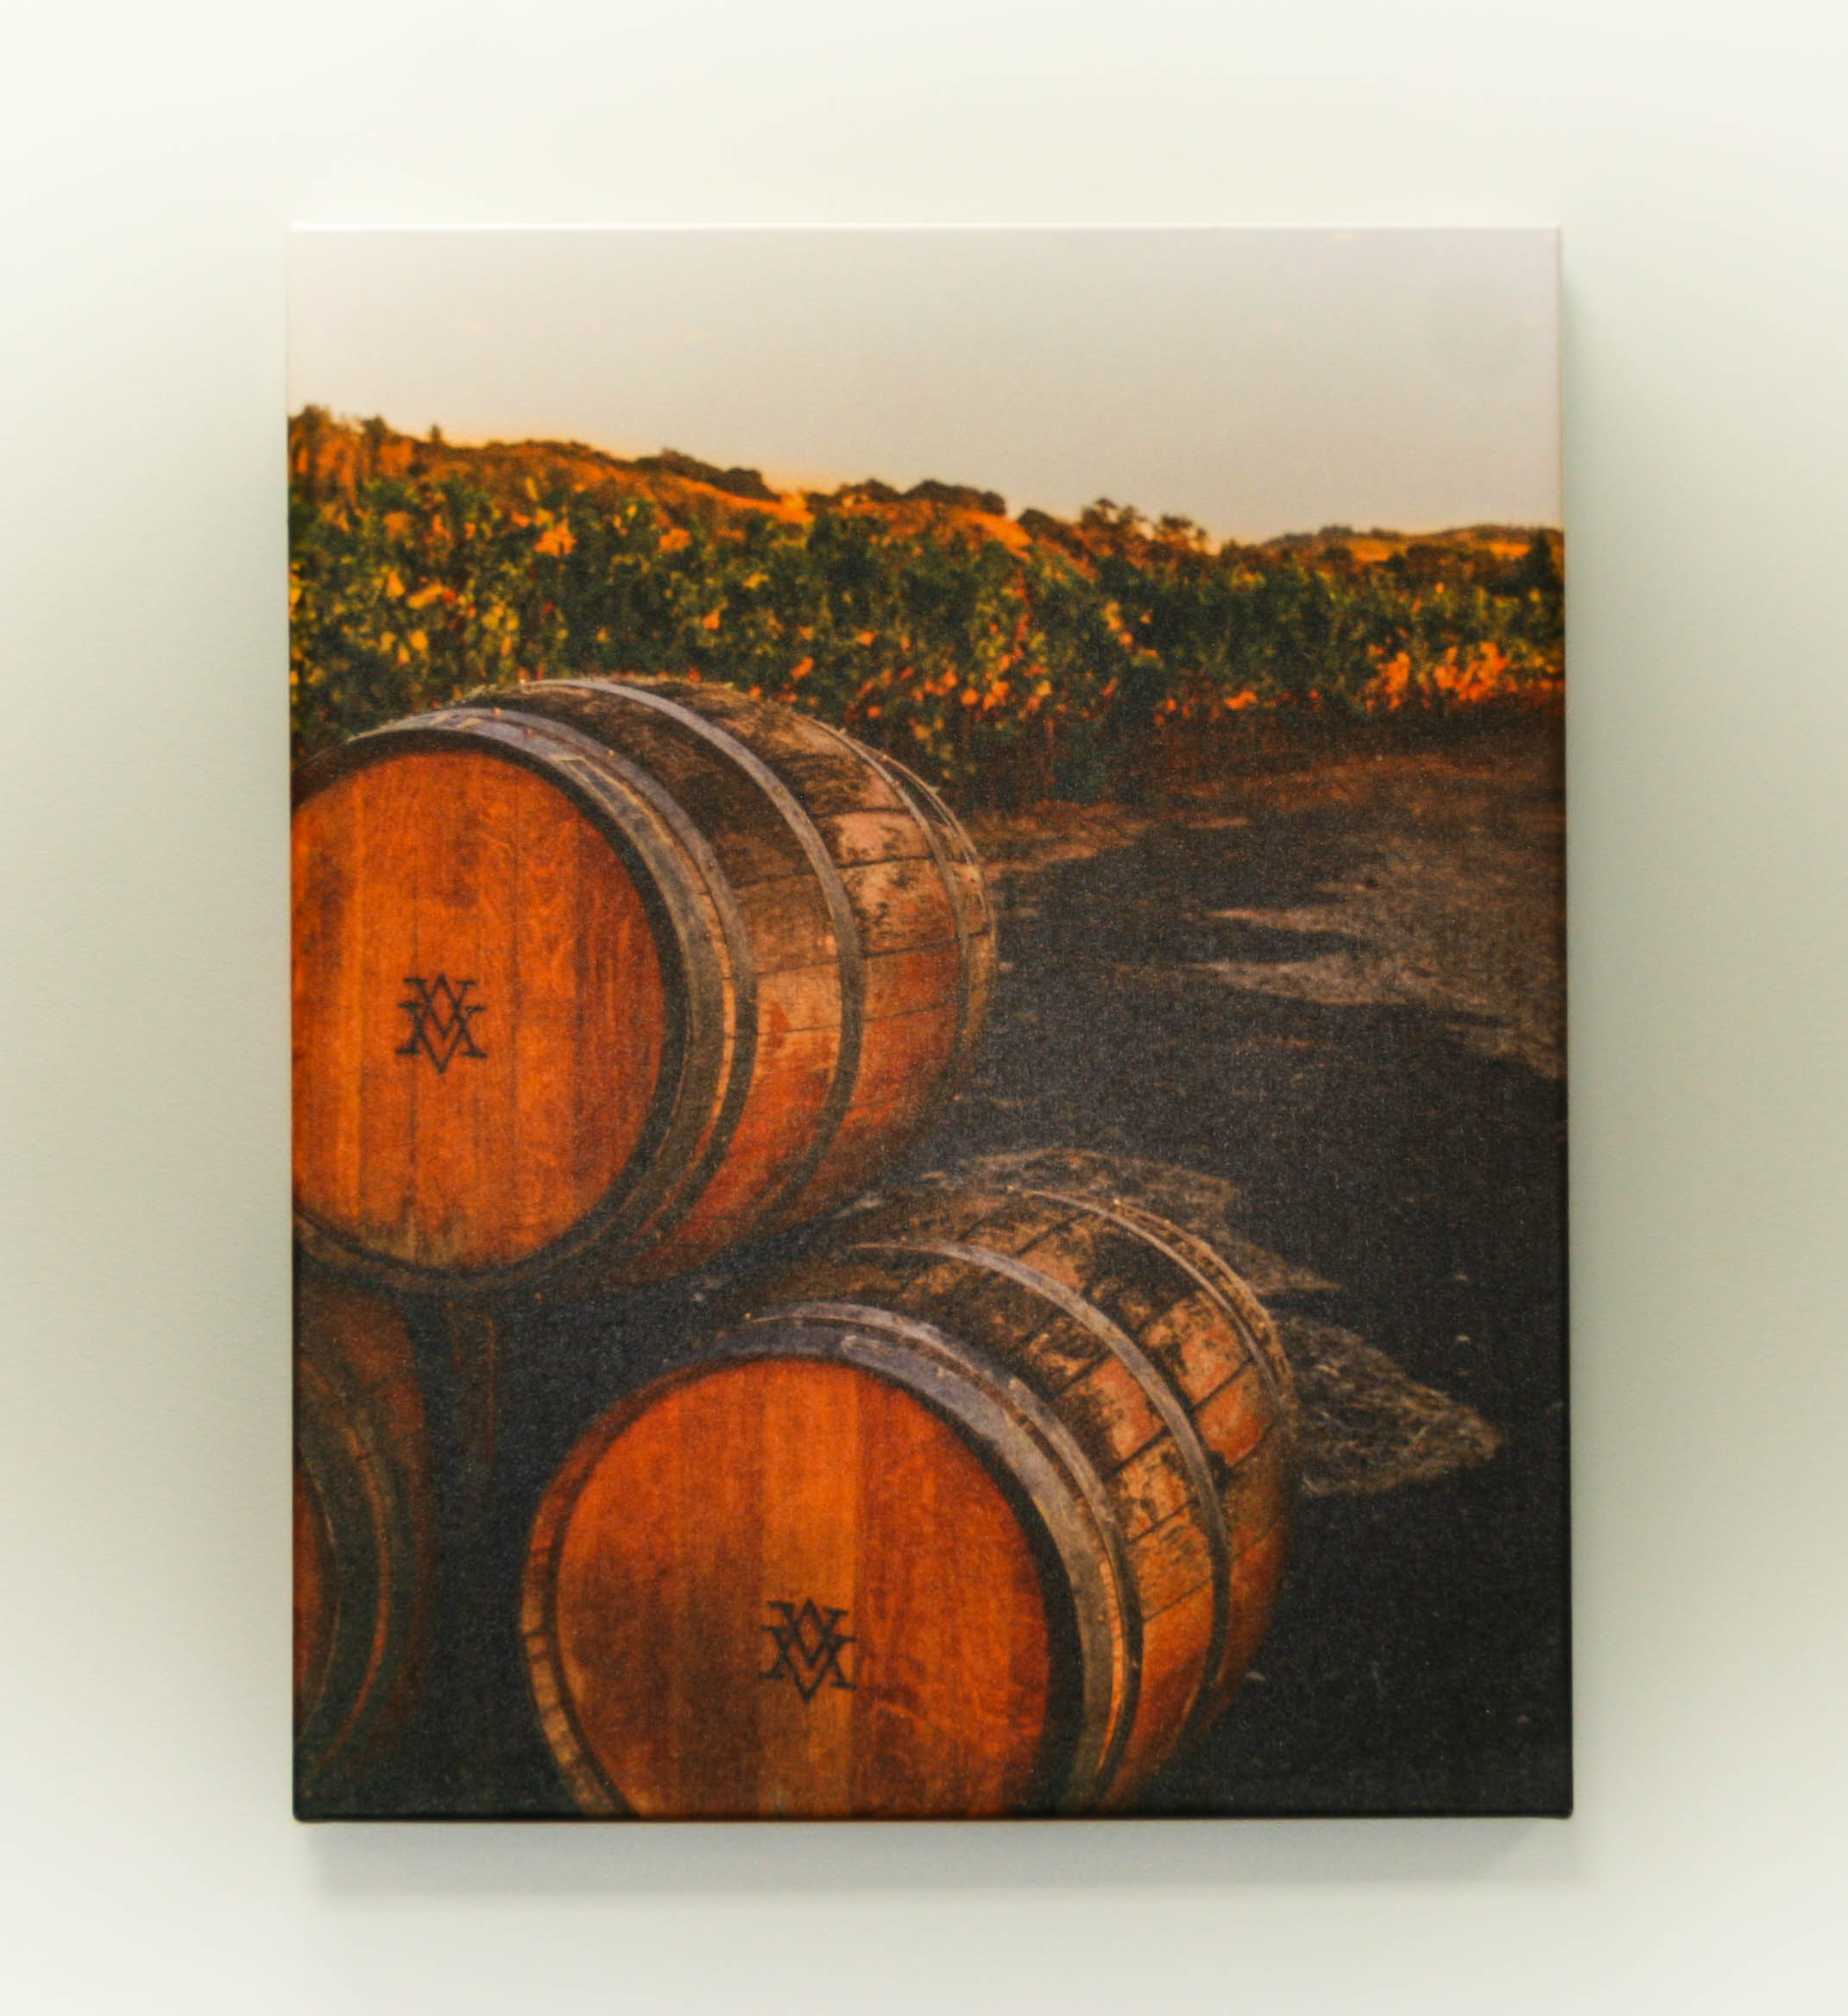 windsor_hospitality_artwork_wine_barrels